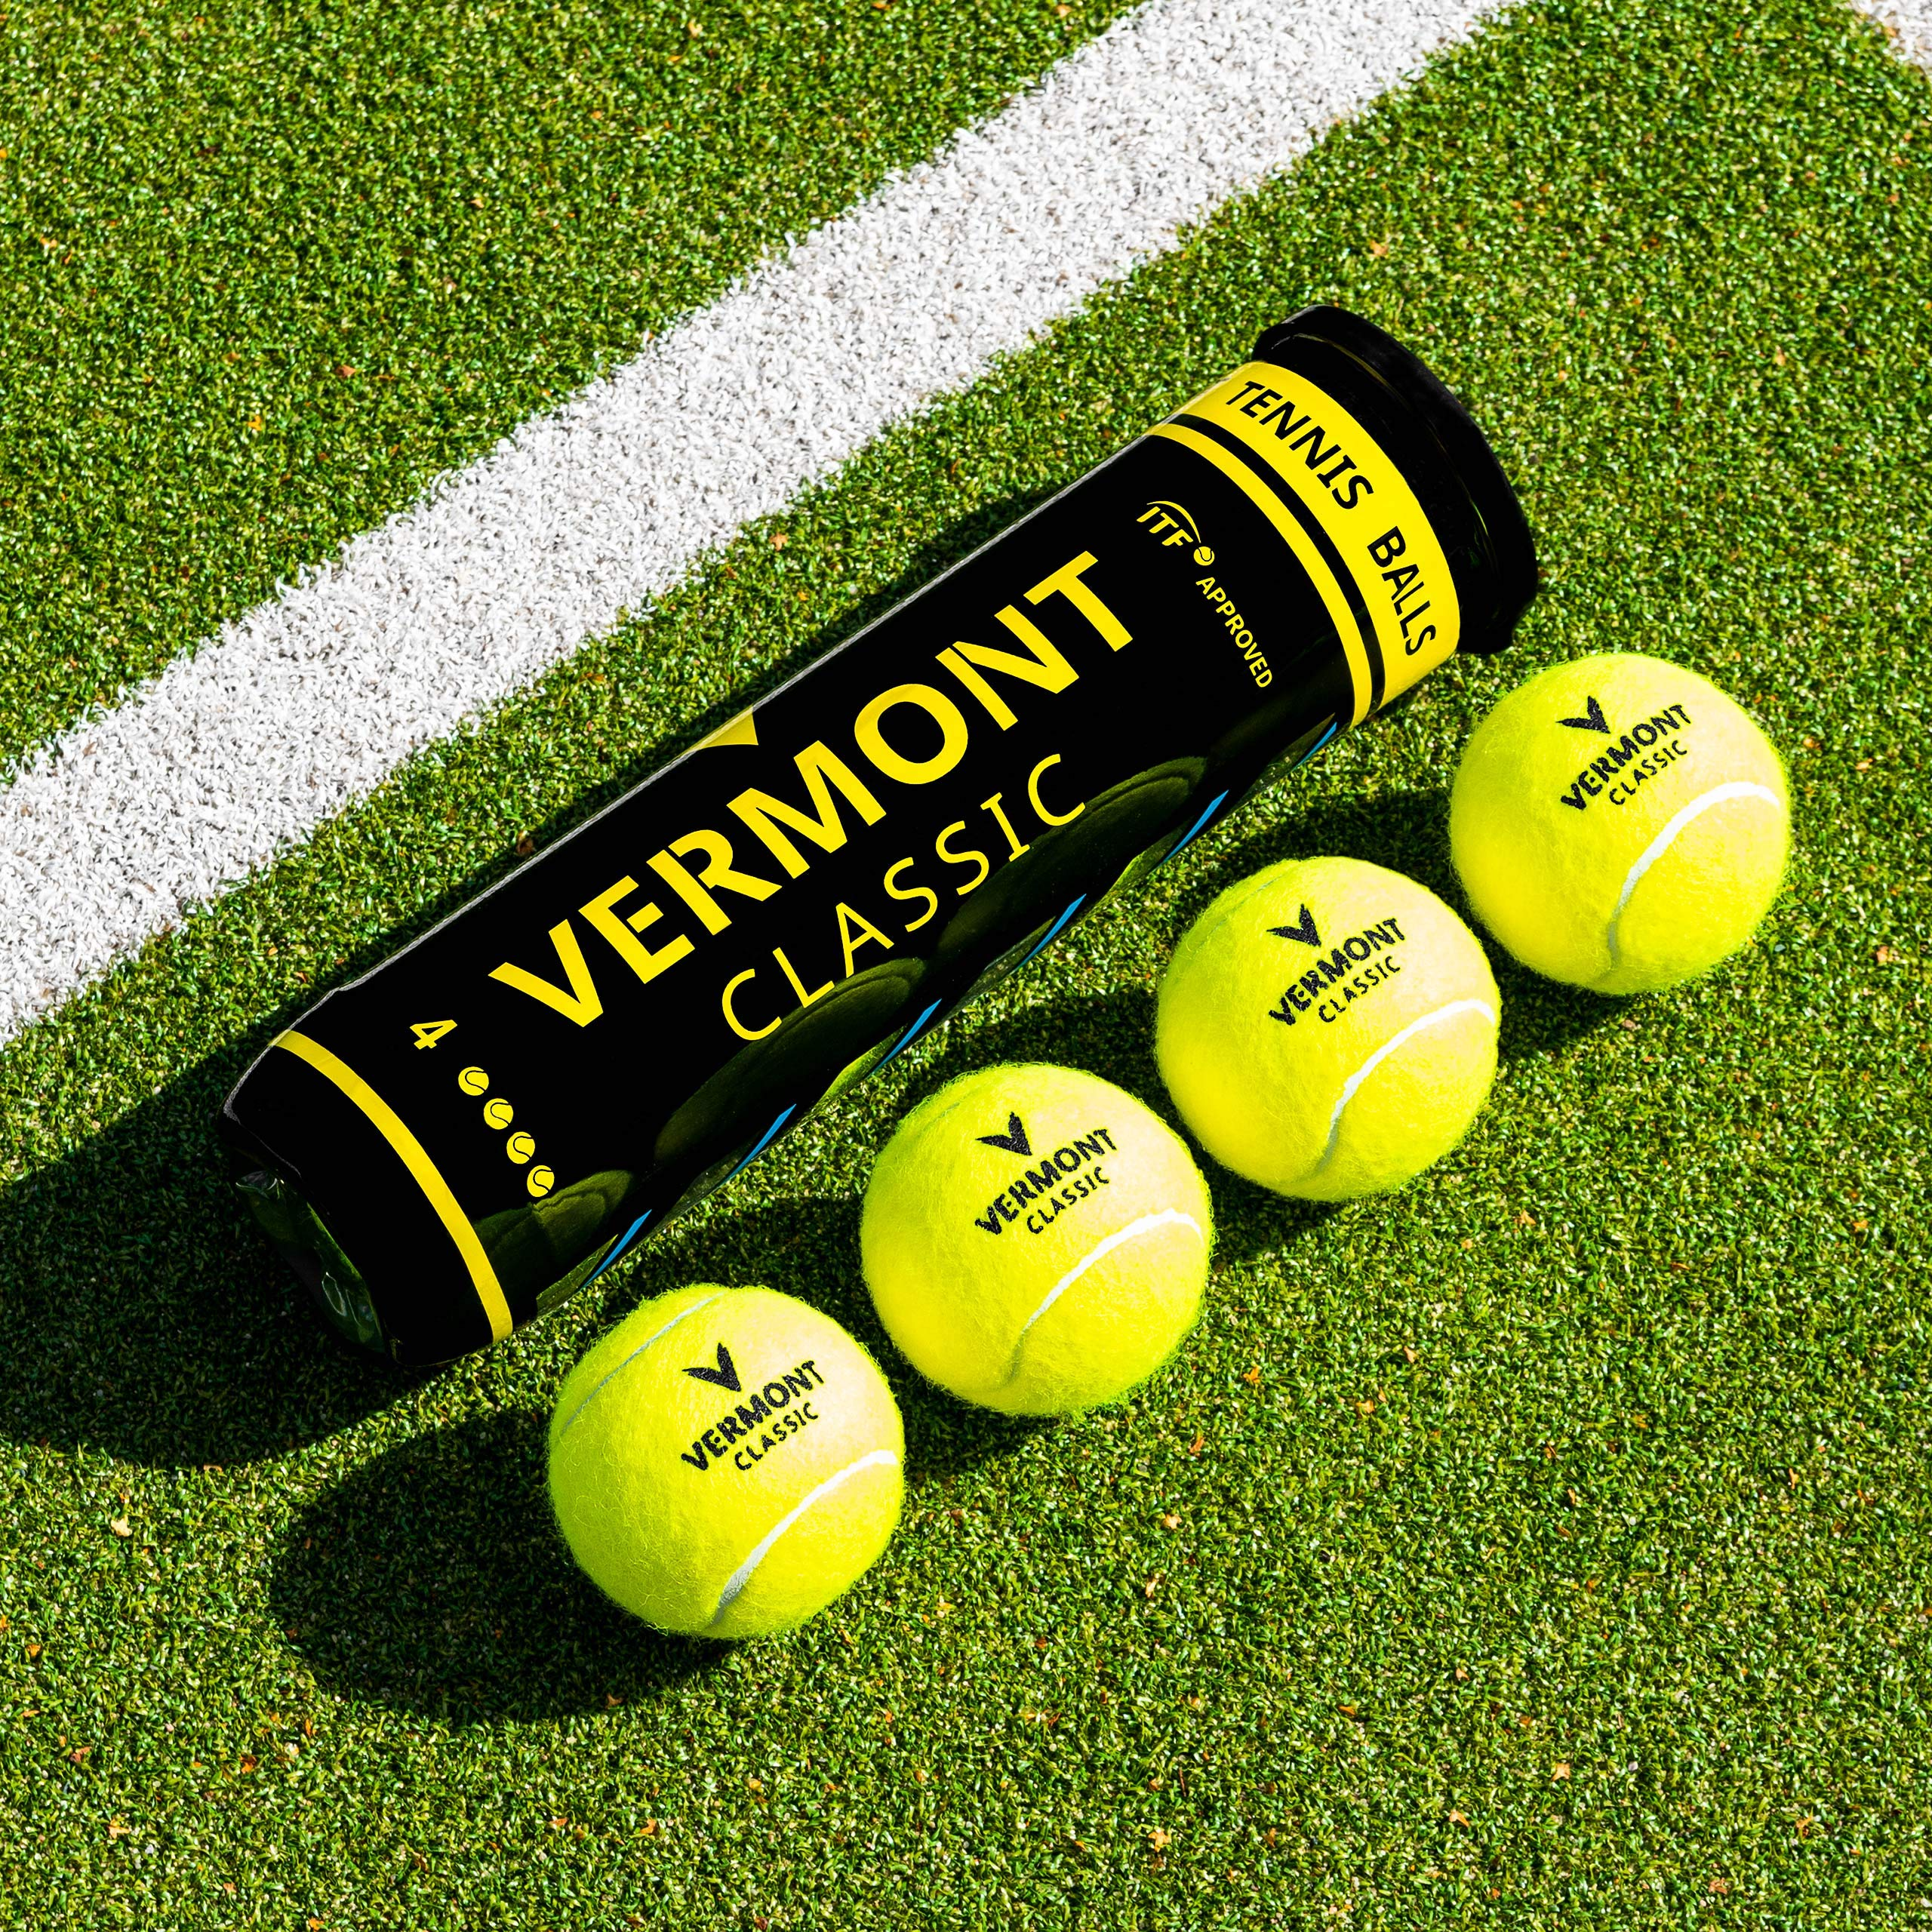 Vermont Classic Tennis Balls – FluroFelt Woven Cloth - High Performance DuraCore Rubber – ITF Approved – Extremely Durable - Suitable for Any Playing Surface (1 Can / 4 Balls)